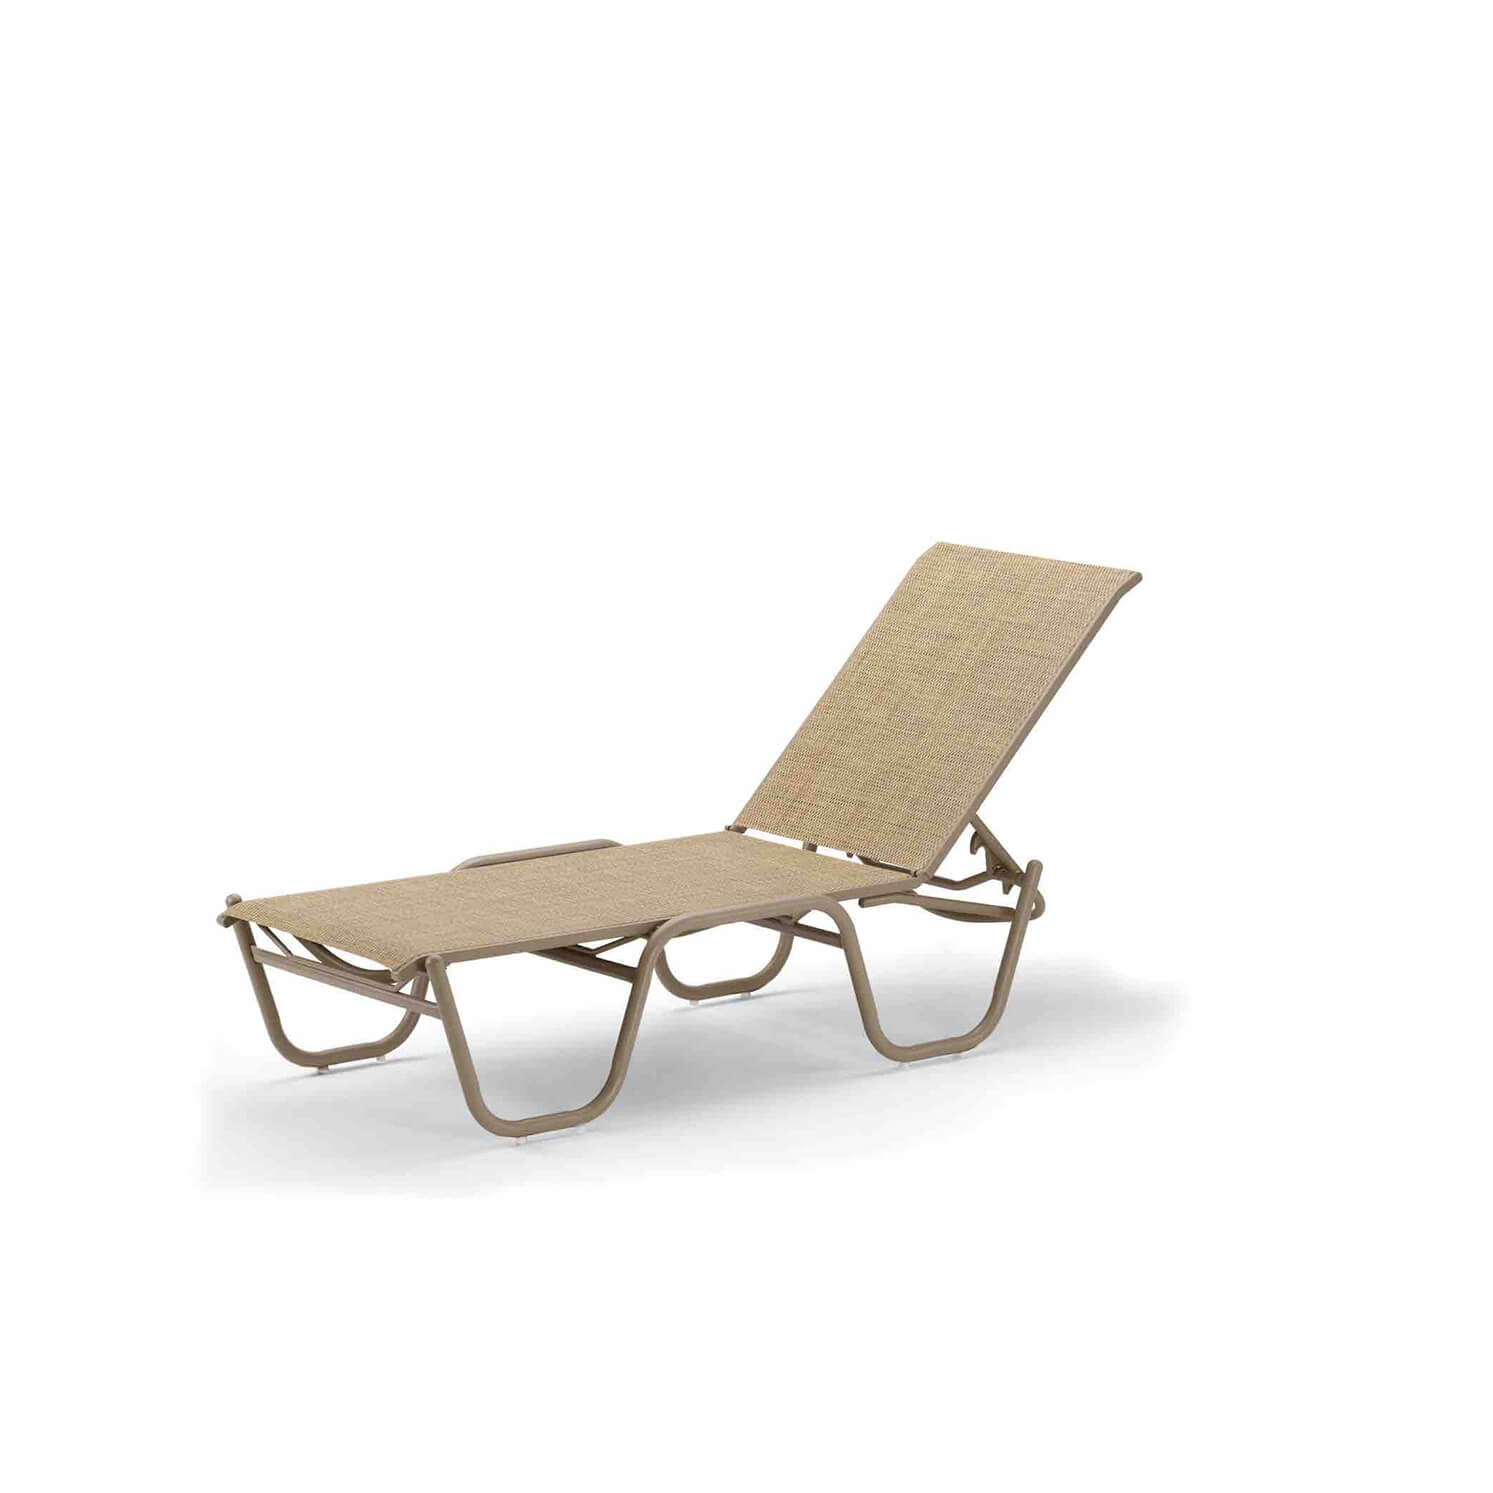 Reliance Lay Flat Stacking Chaise